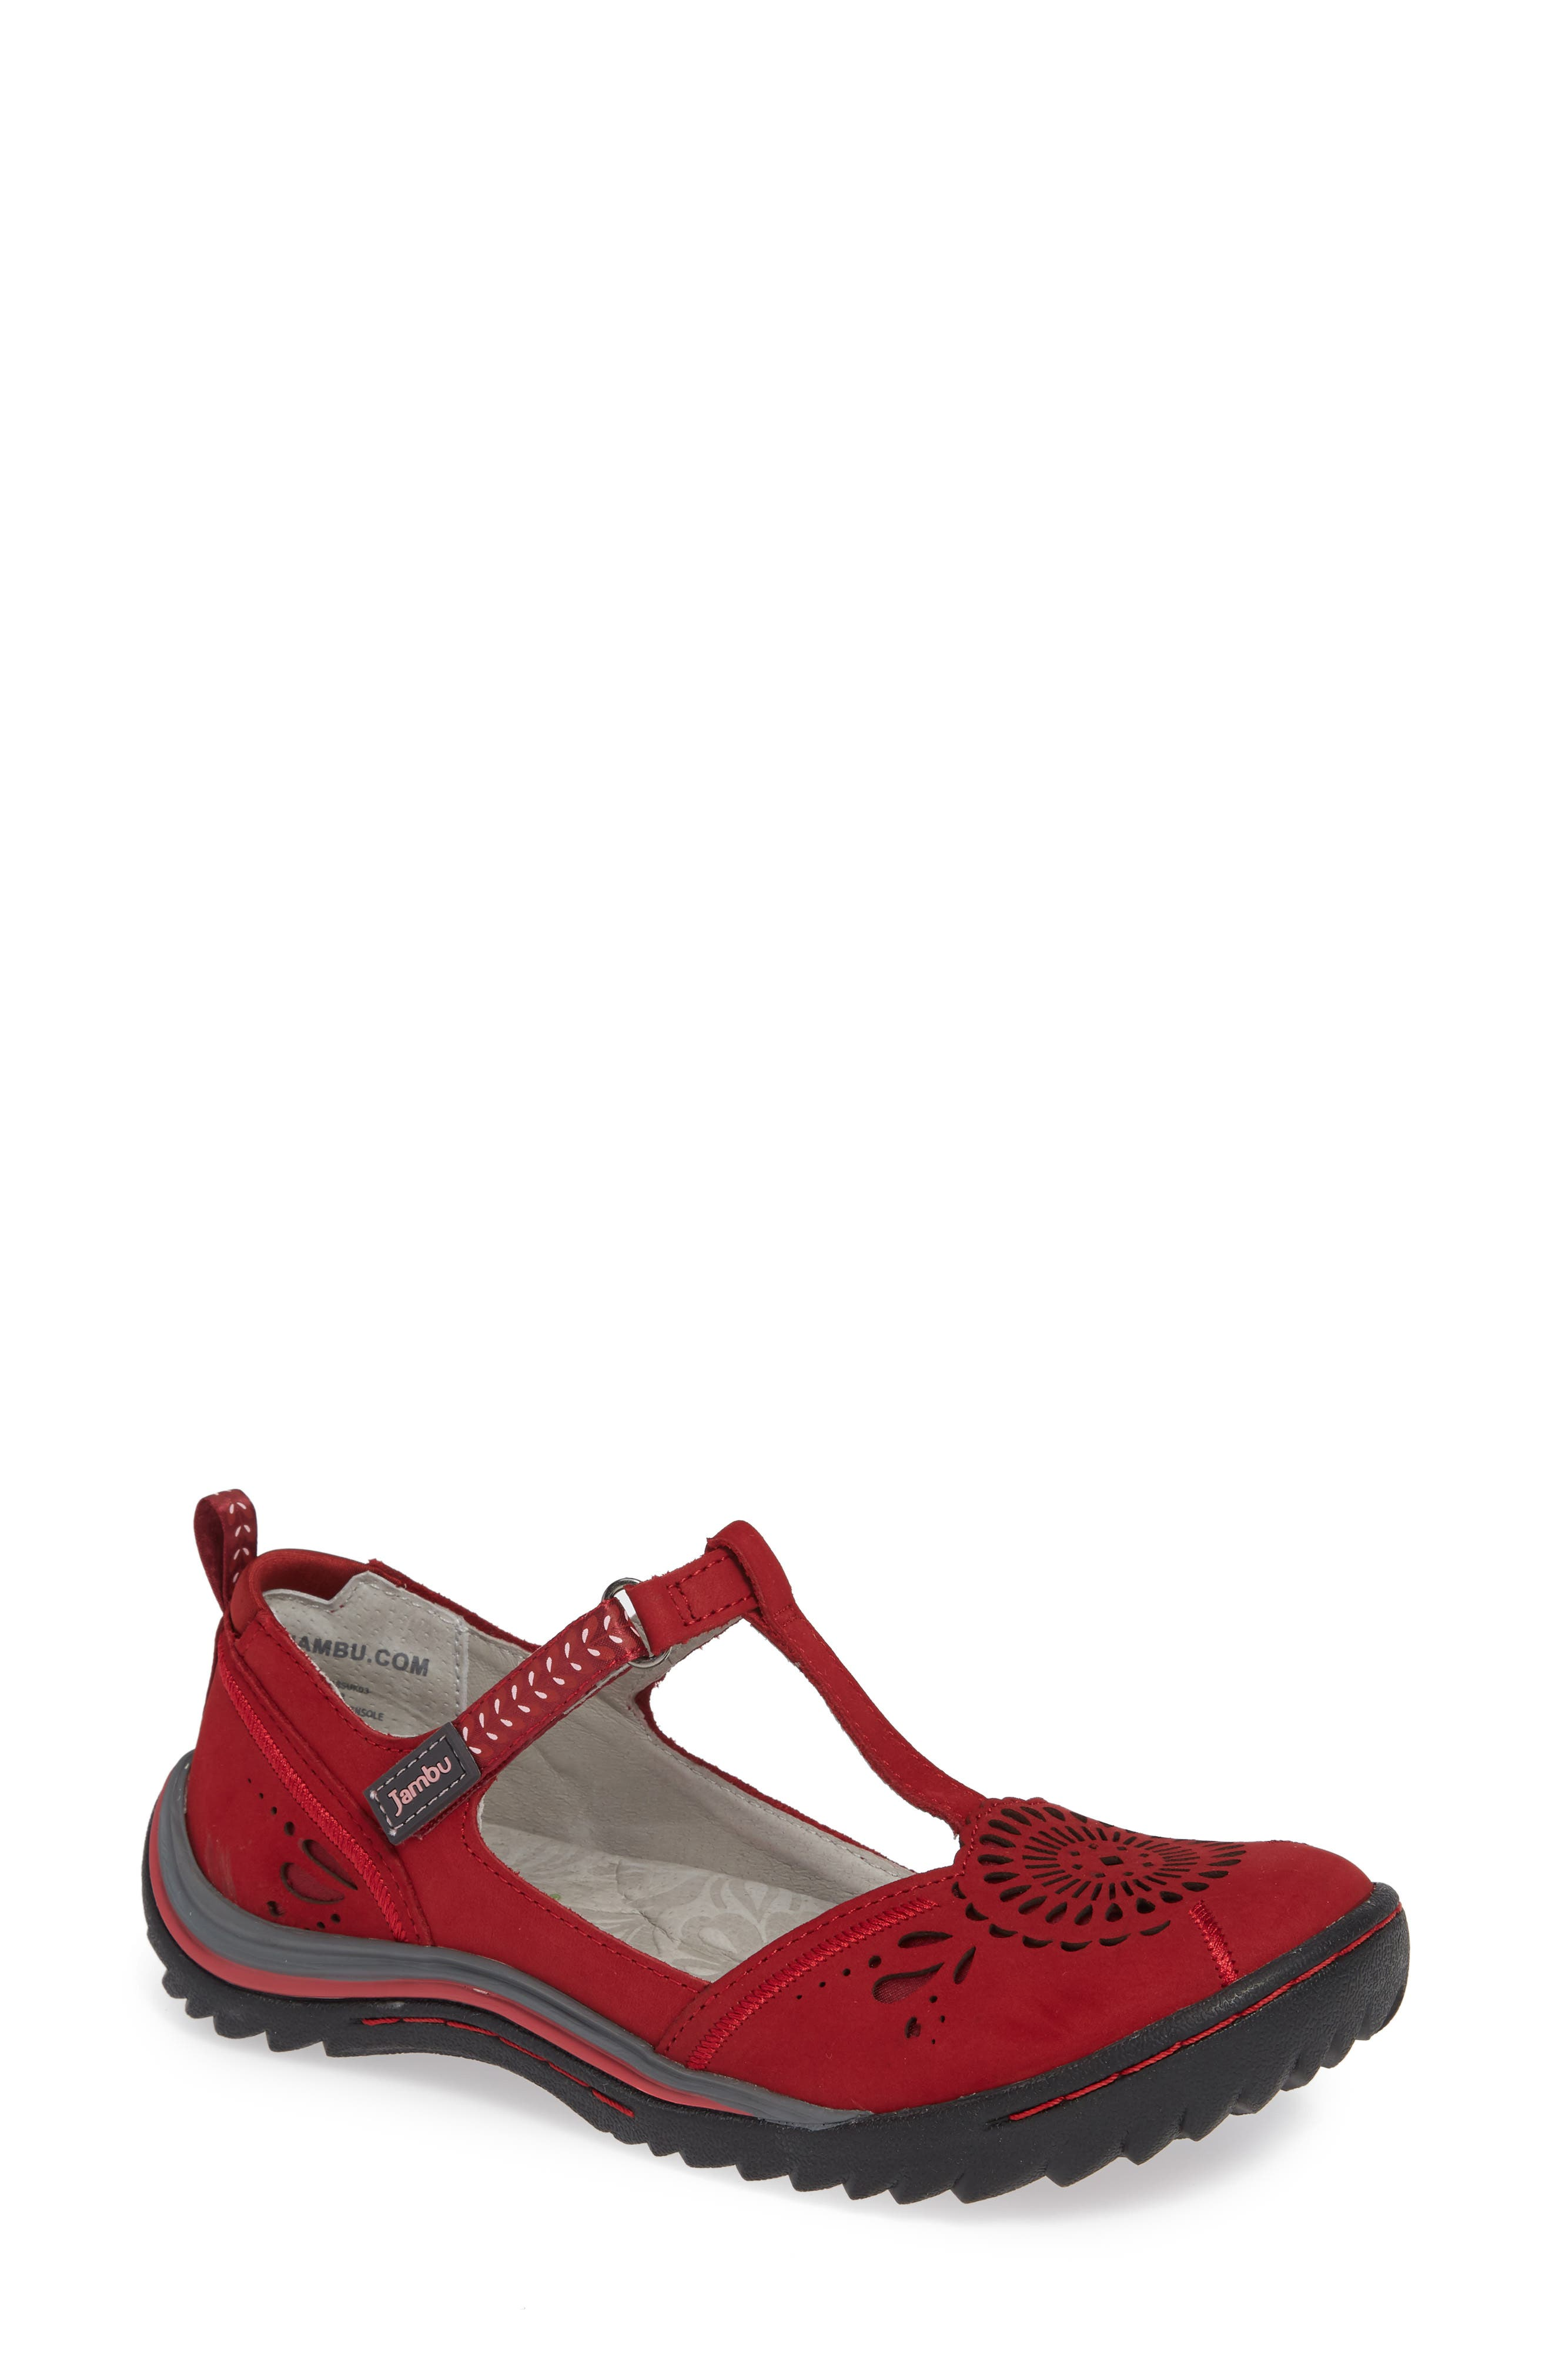 Sunkist Strappy Sneaker,                             Main thumbnail 1, color,                             RED/ PETAL NUBUCK LEATHER